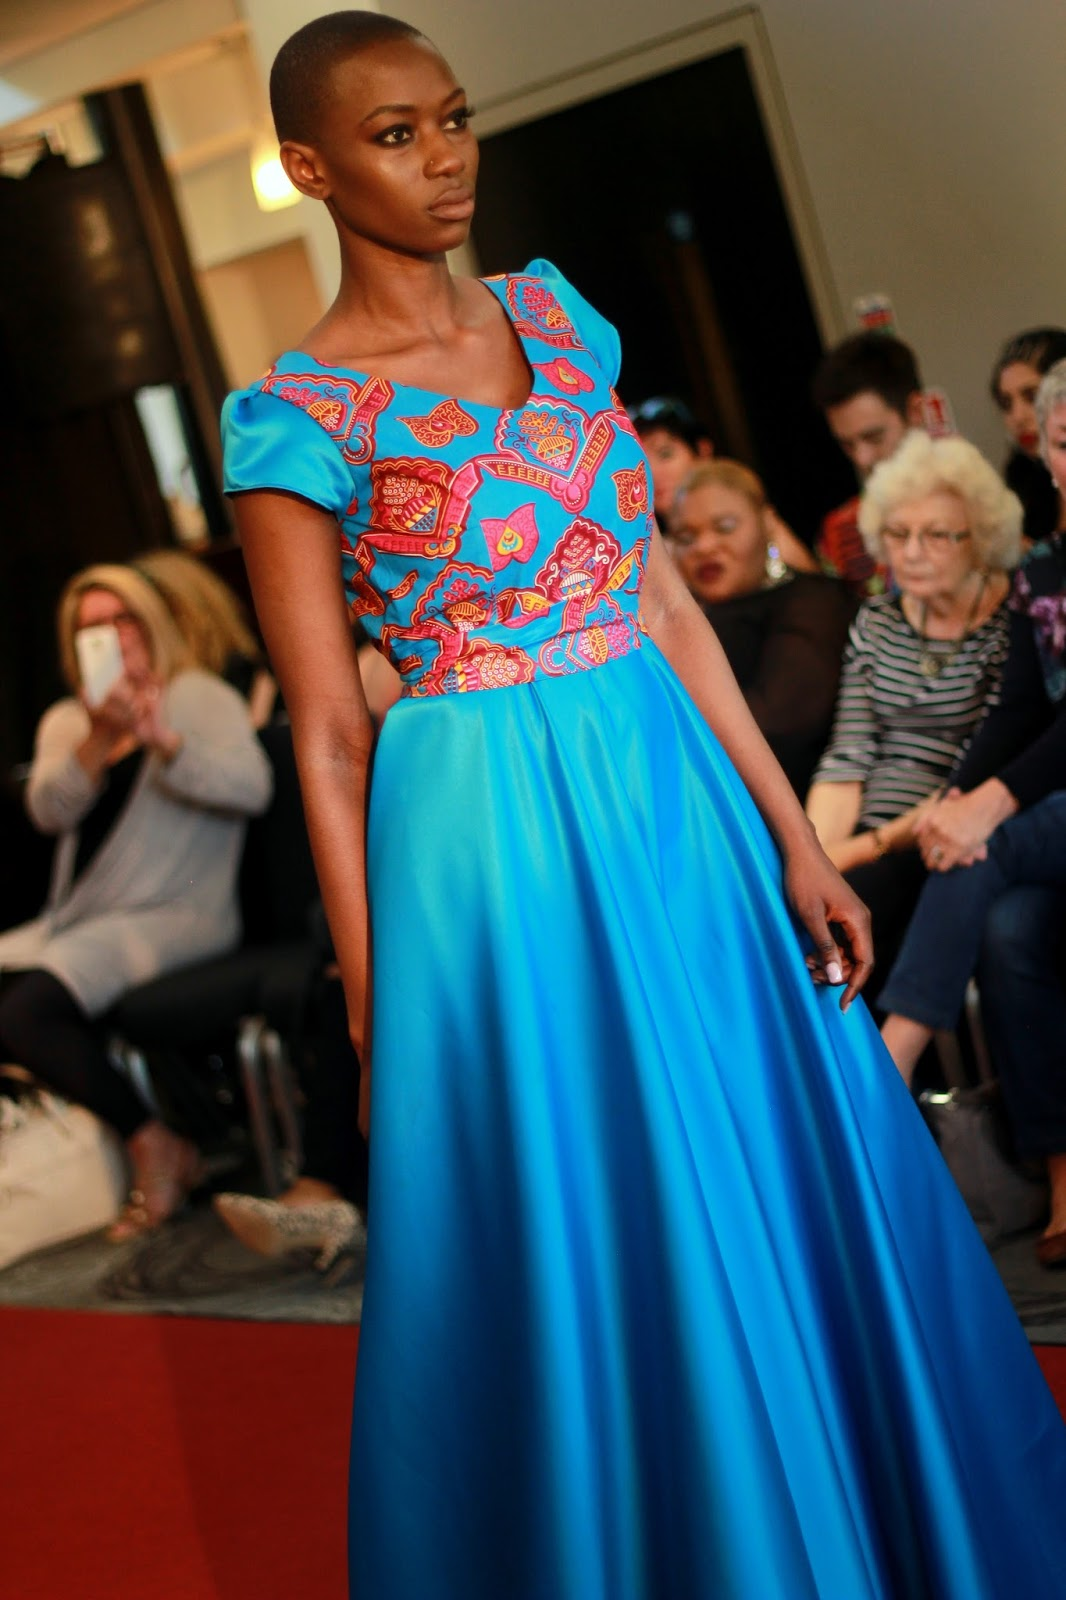 Ndey Manneh in Yvonne Yvette by Karina So. for Ses Rêveries at Manchester Fashion Week 2016